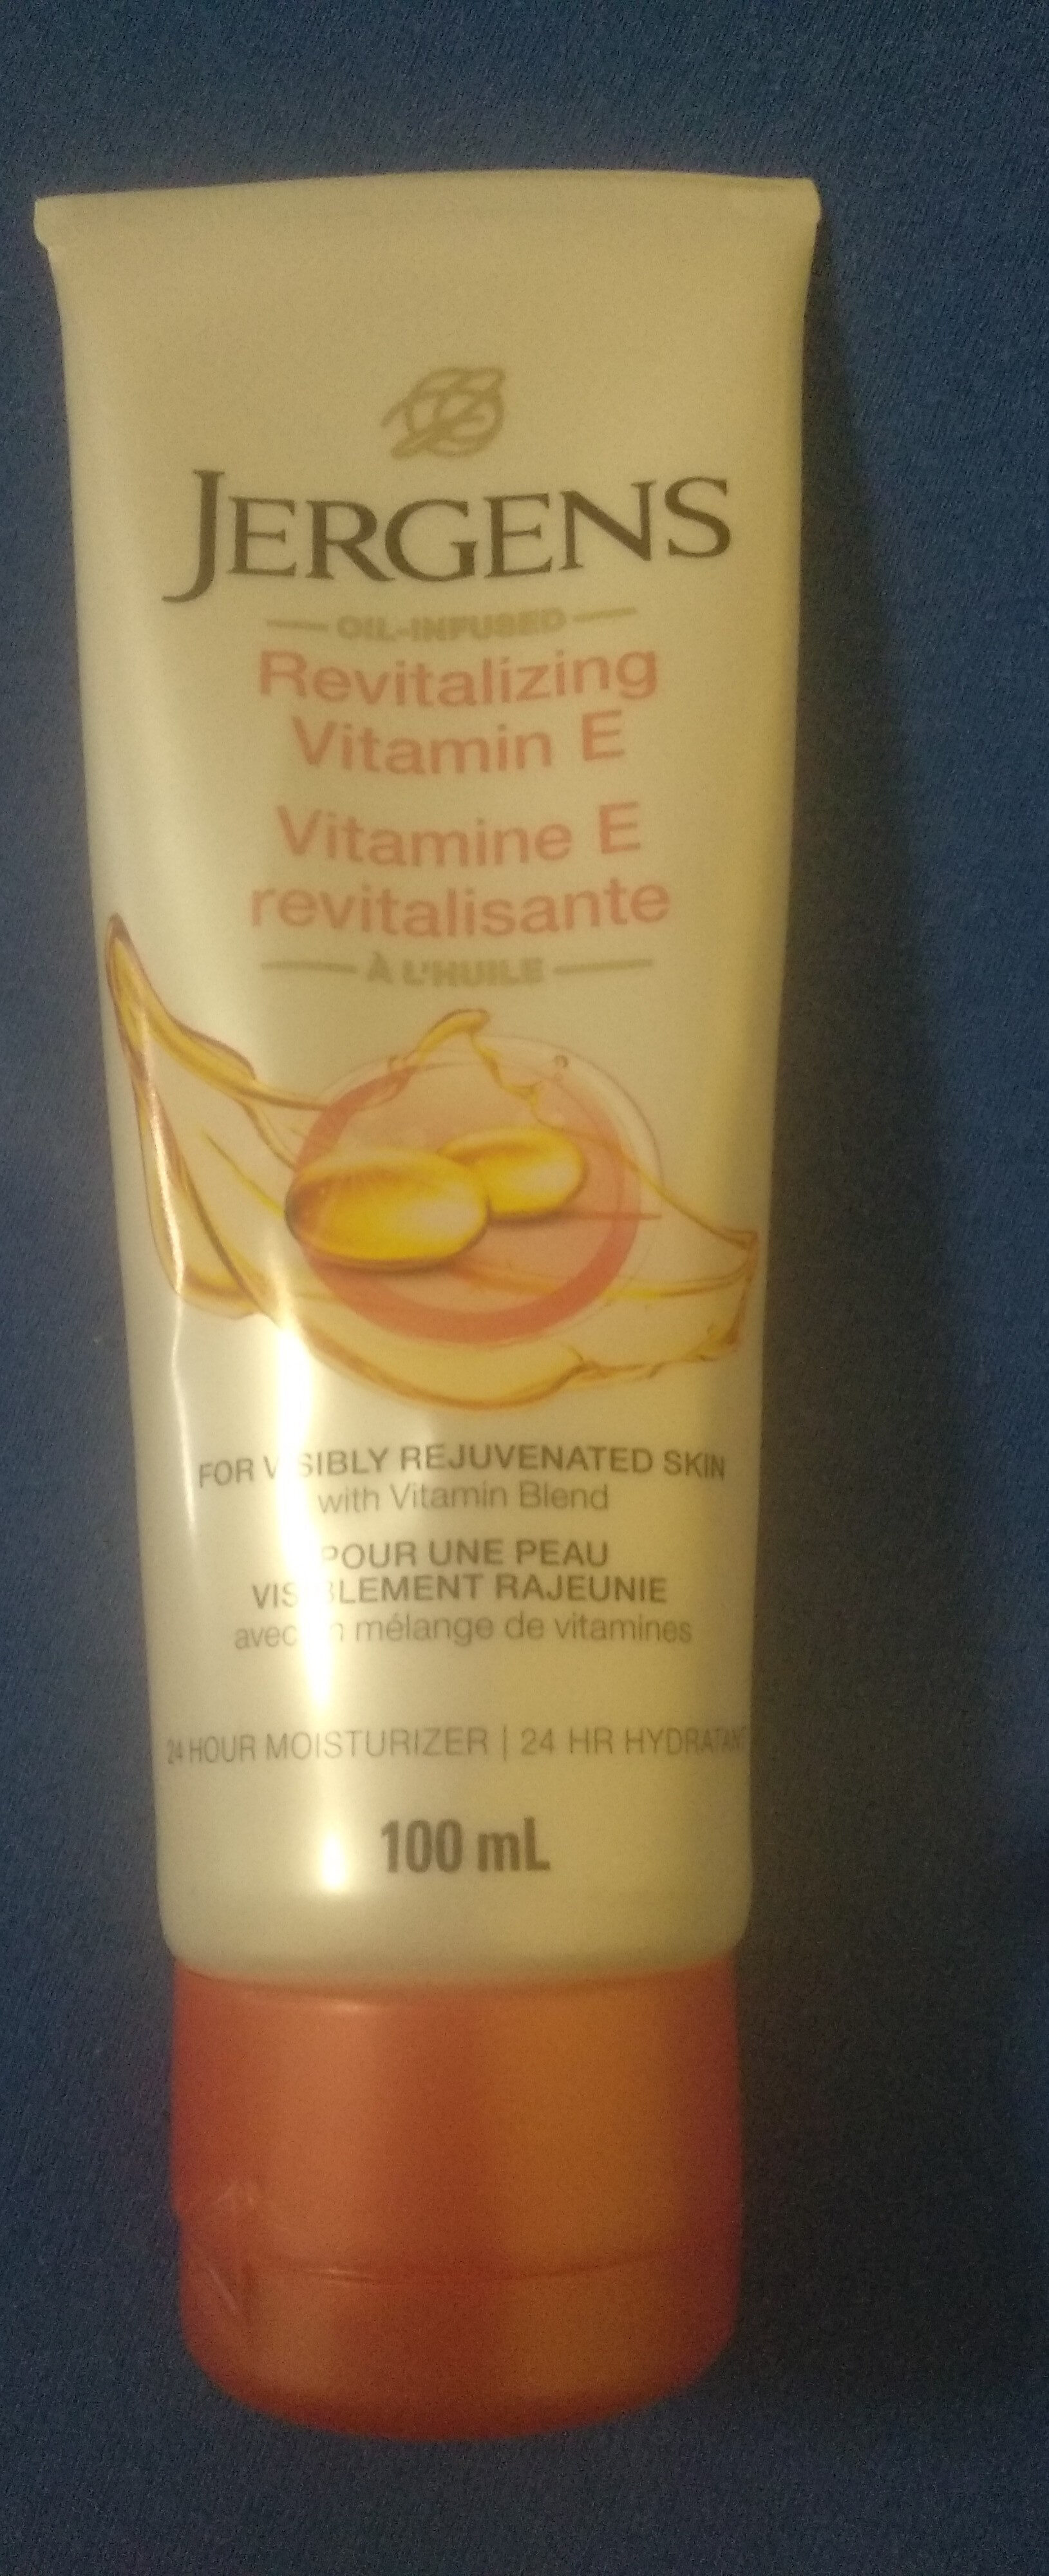 Revitalizing Vitamine E - Product - en